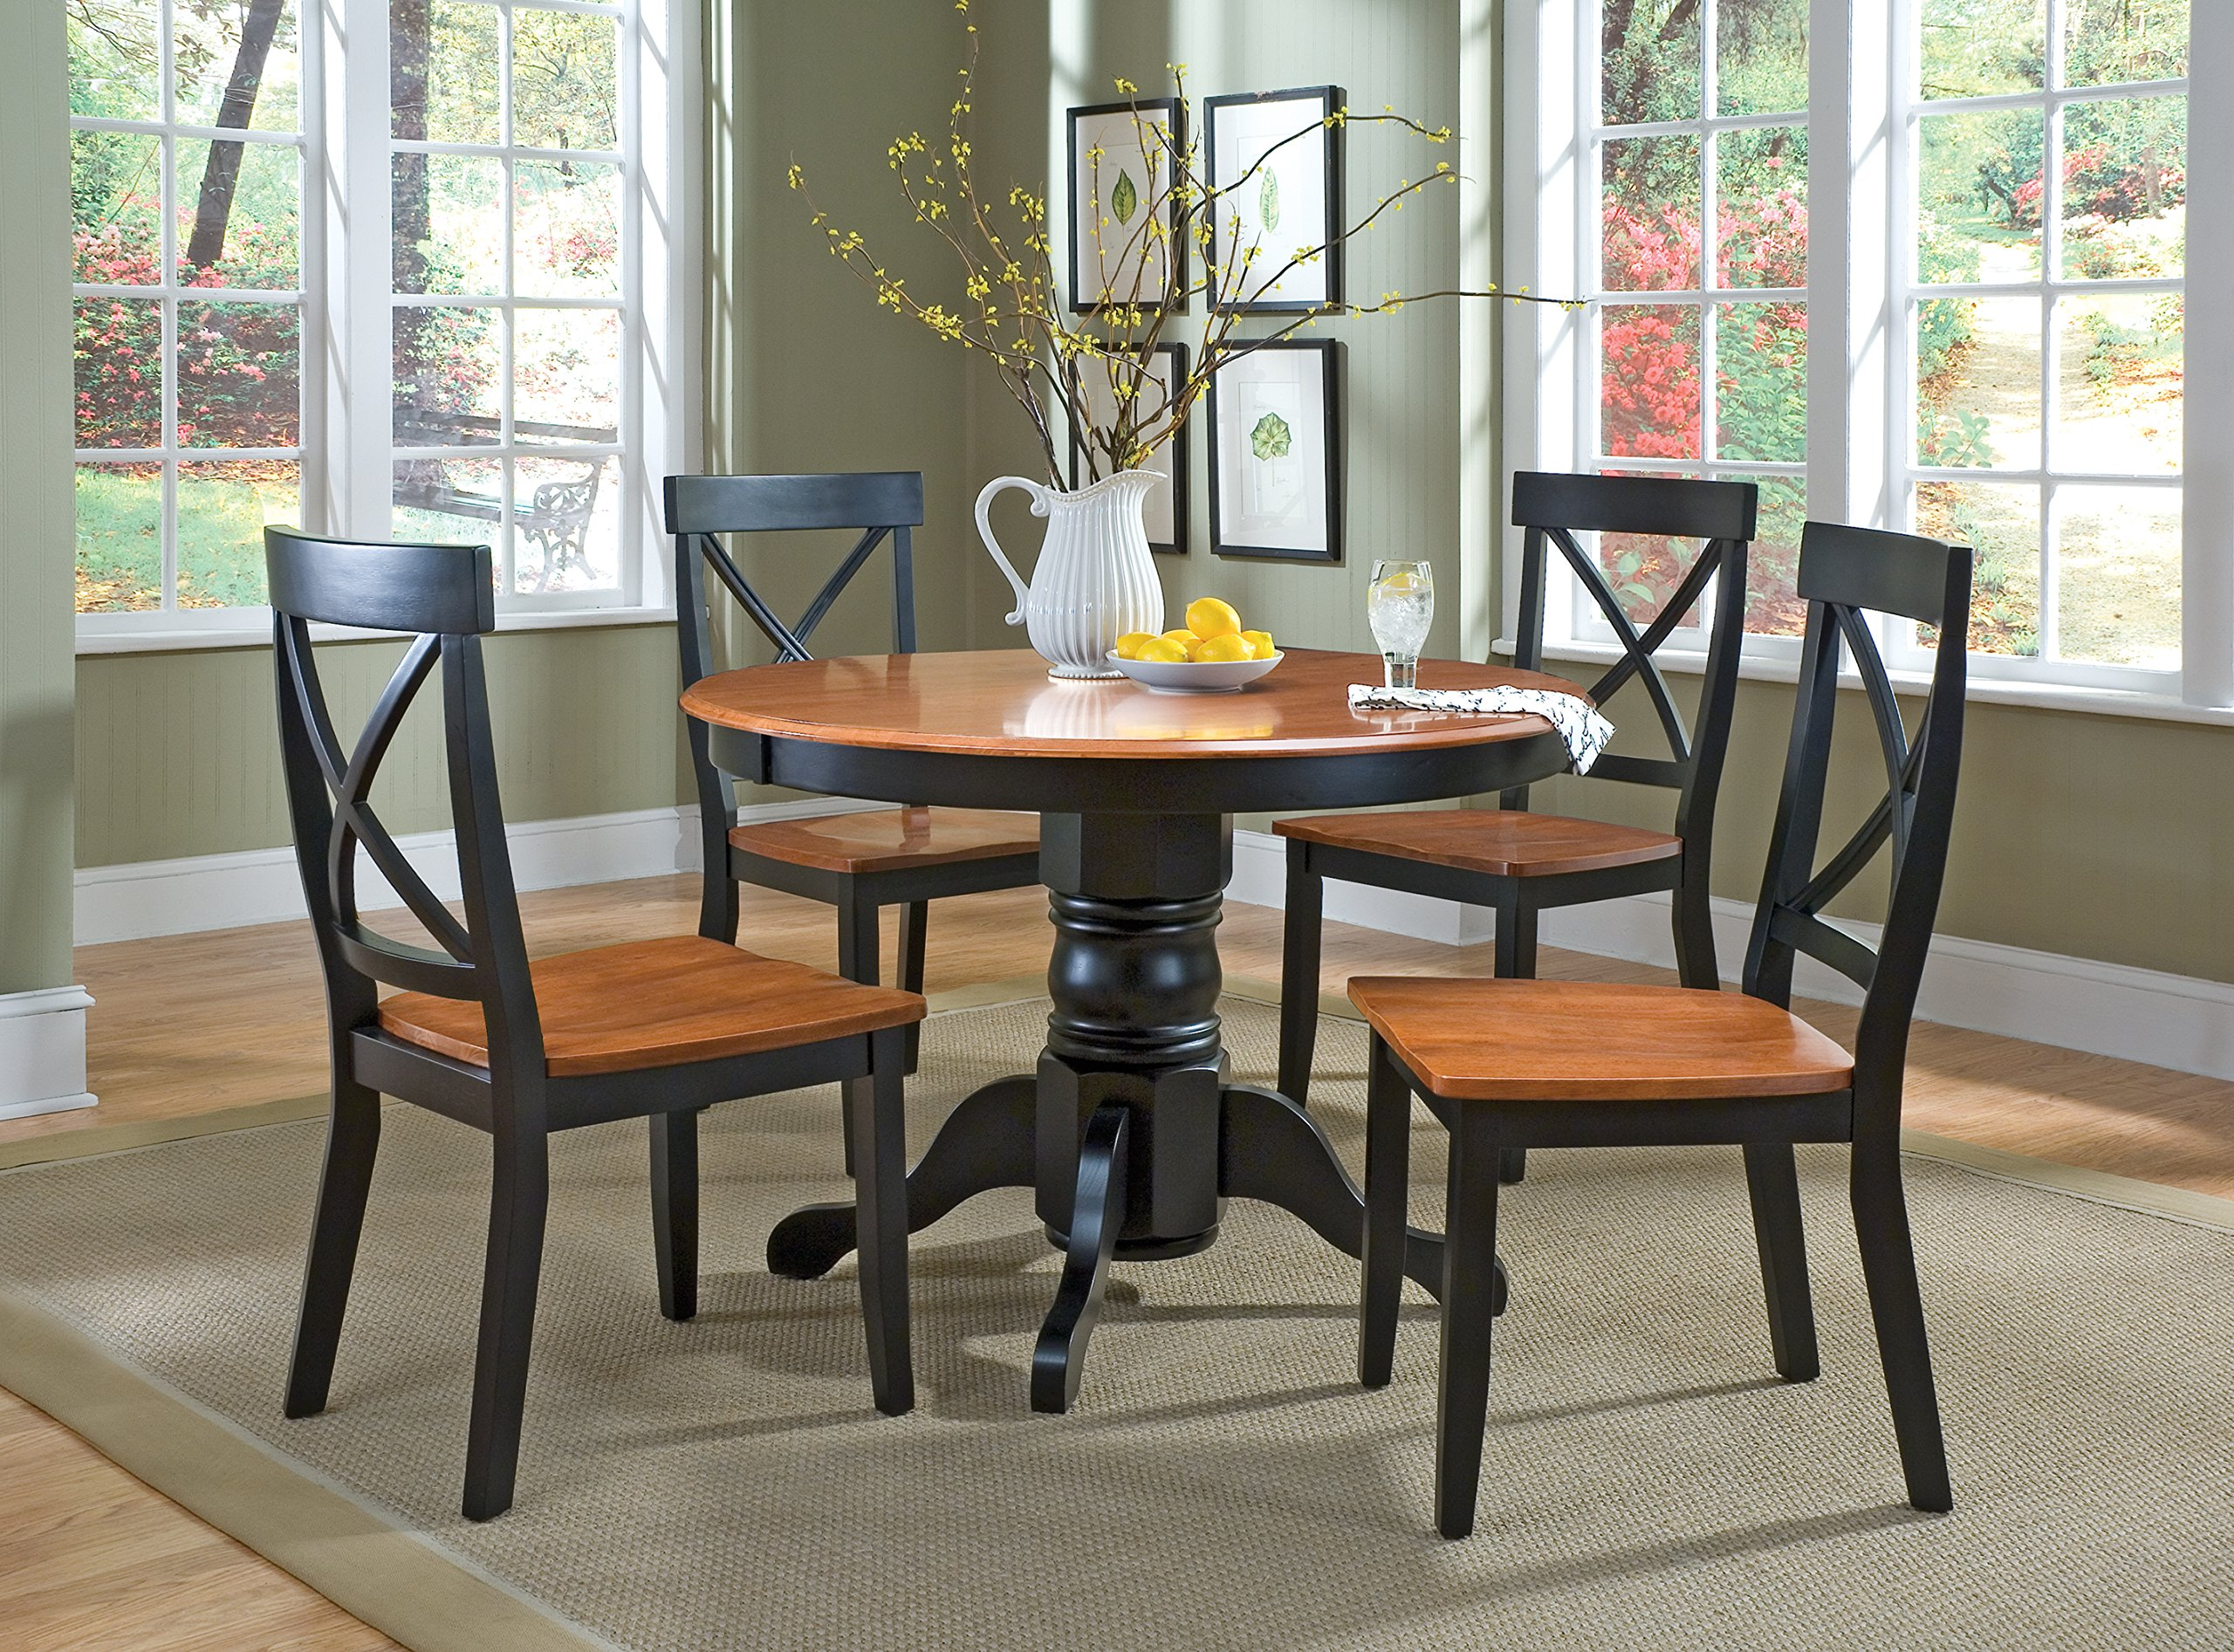 Home Styles 5168-30 Round Pedestal Dining Table, Black and Cottage Oak Finish by Home Styles (Image #4)